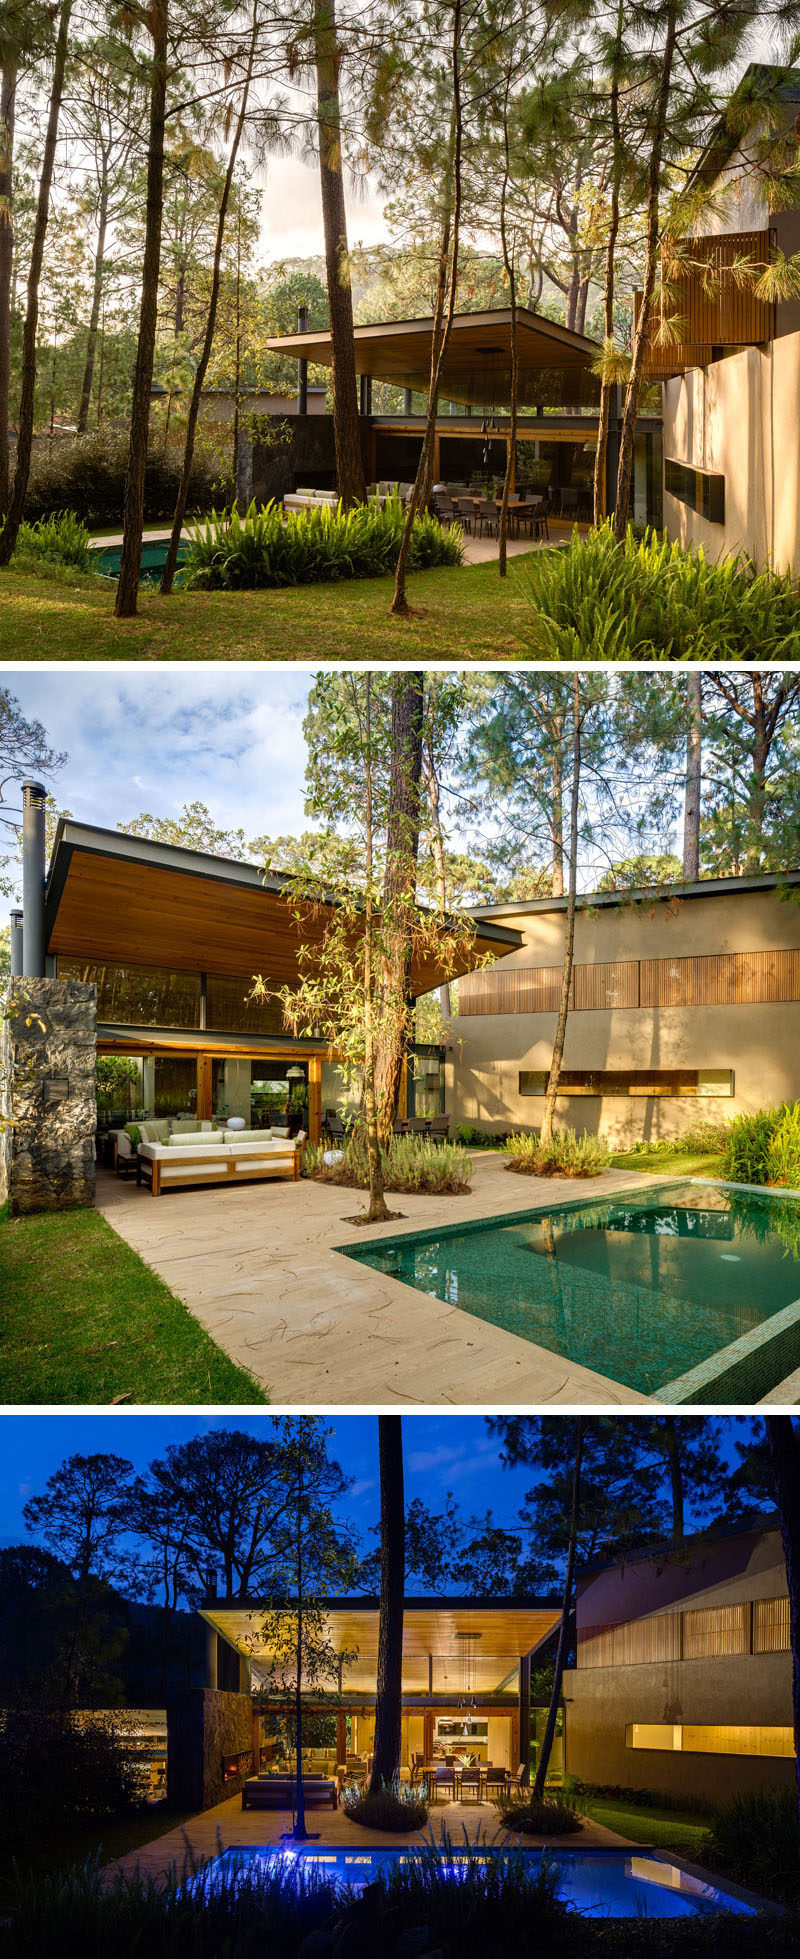 18 Modern House In The Forest // This house was part of a development designed to work with the environment instead of against it and to compliment the surrounding forest vegetation. #ModernHouse #ModernArchitecture #HouseInForest #HouseDesign